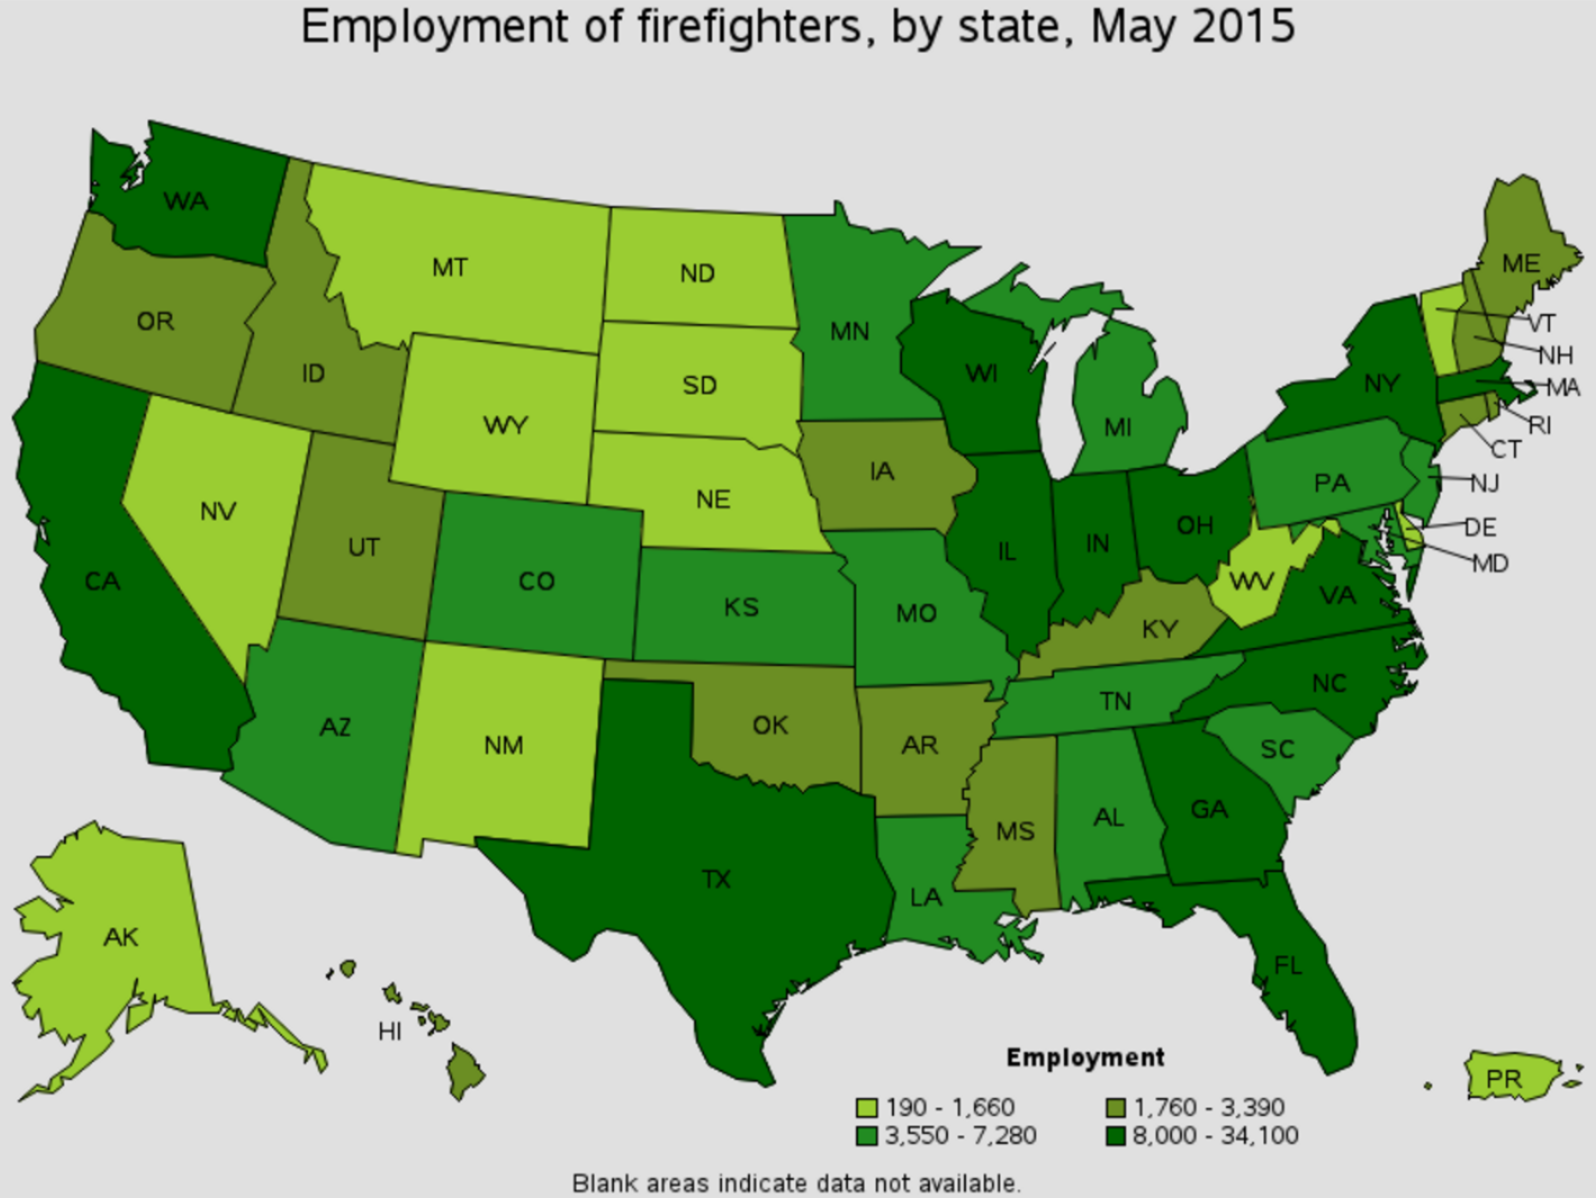 firefighter job outlook by state Young Harris Georgia